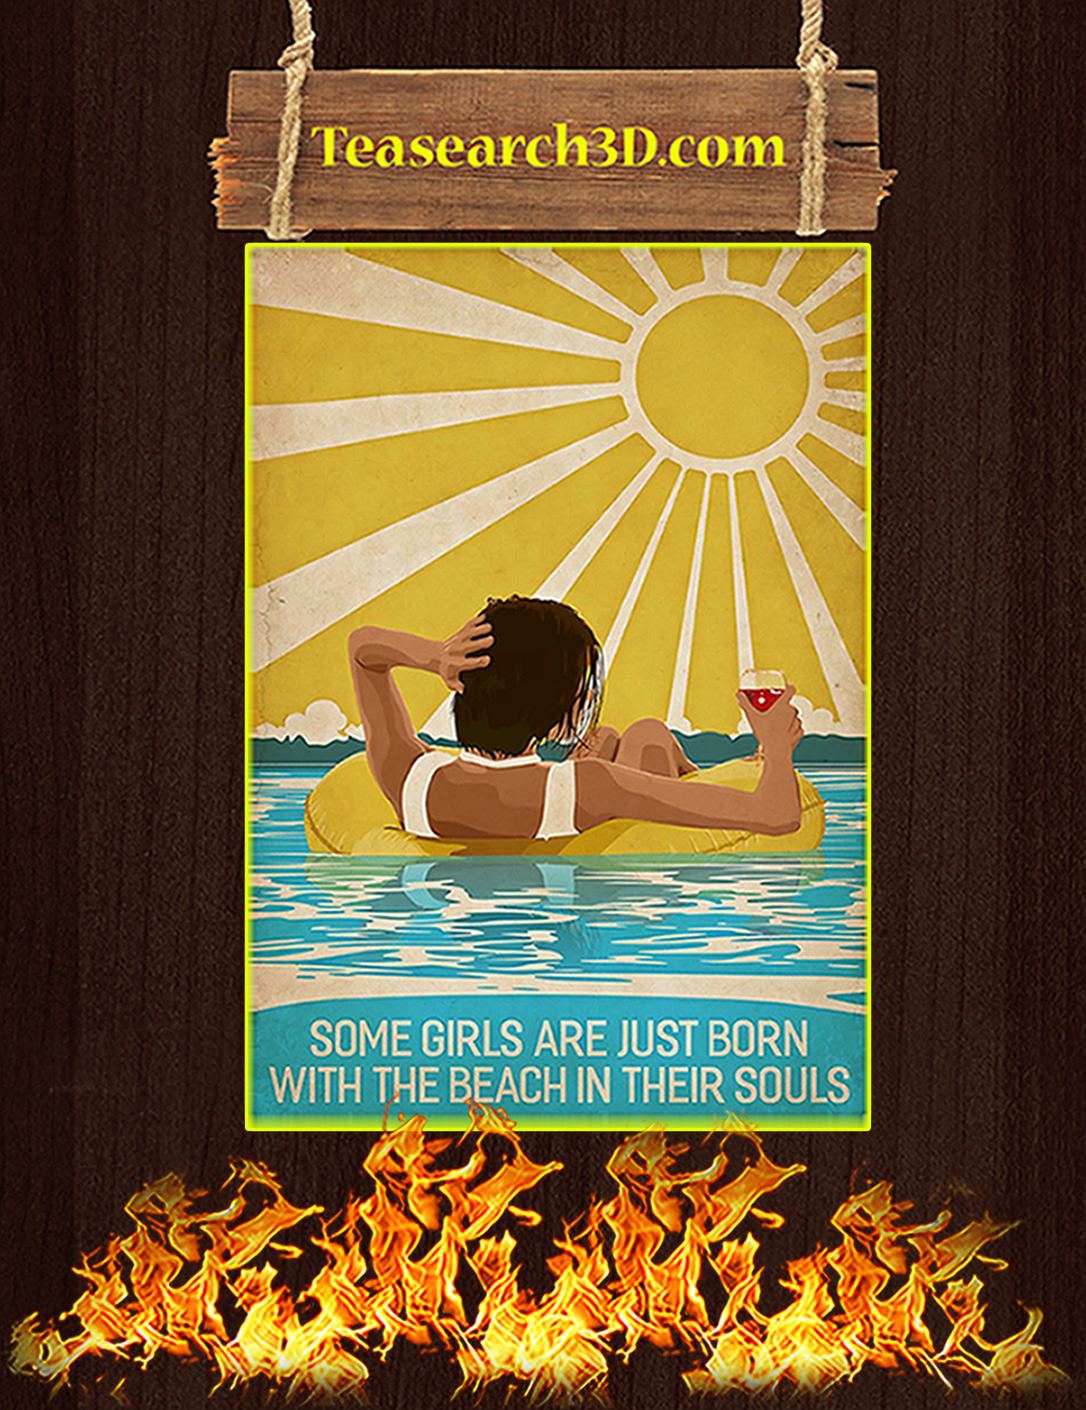 Some girls are just born with the beach in their souls poster A2